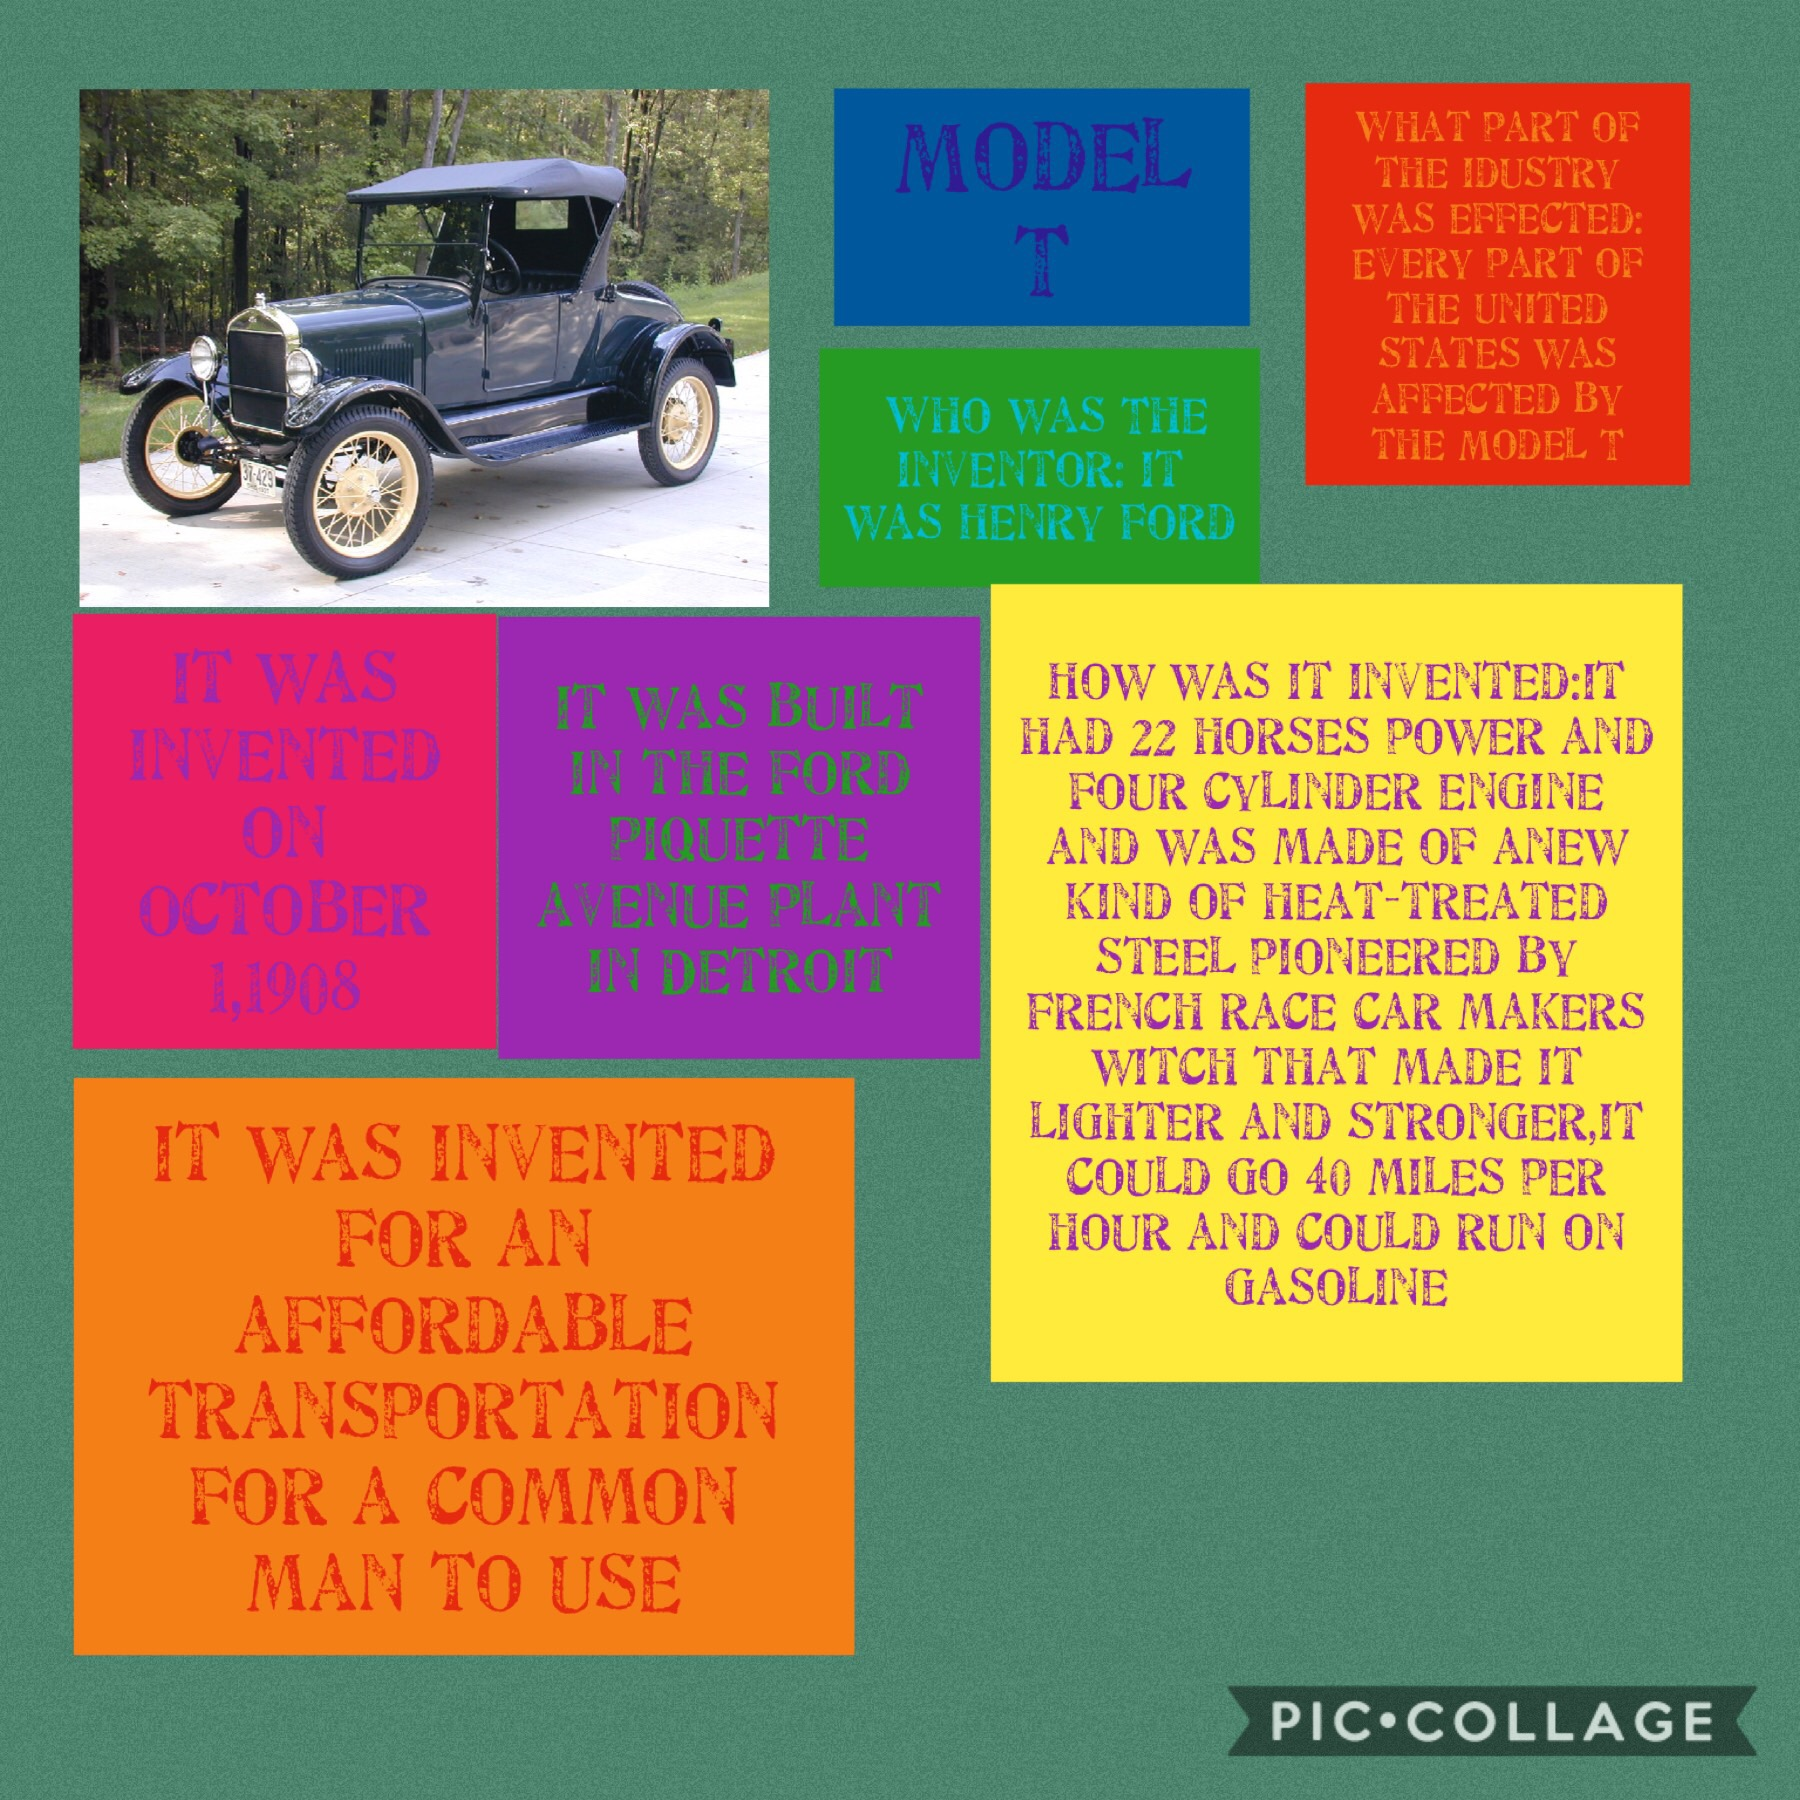 who invented model t